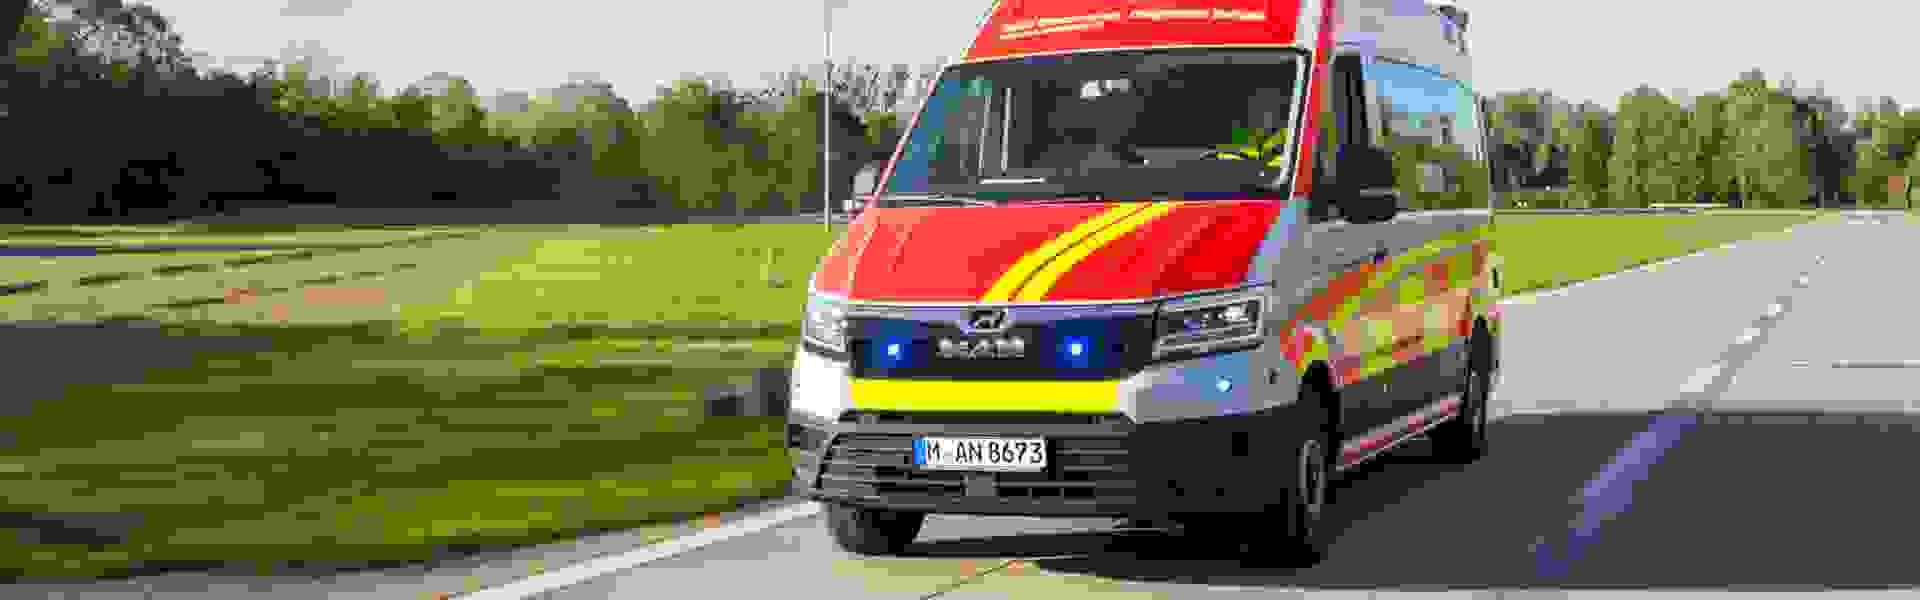 MAN presents its mobile coronavirus test vehicle: PCR test results available within one hour